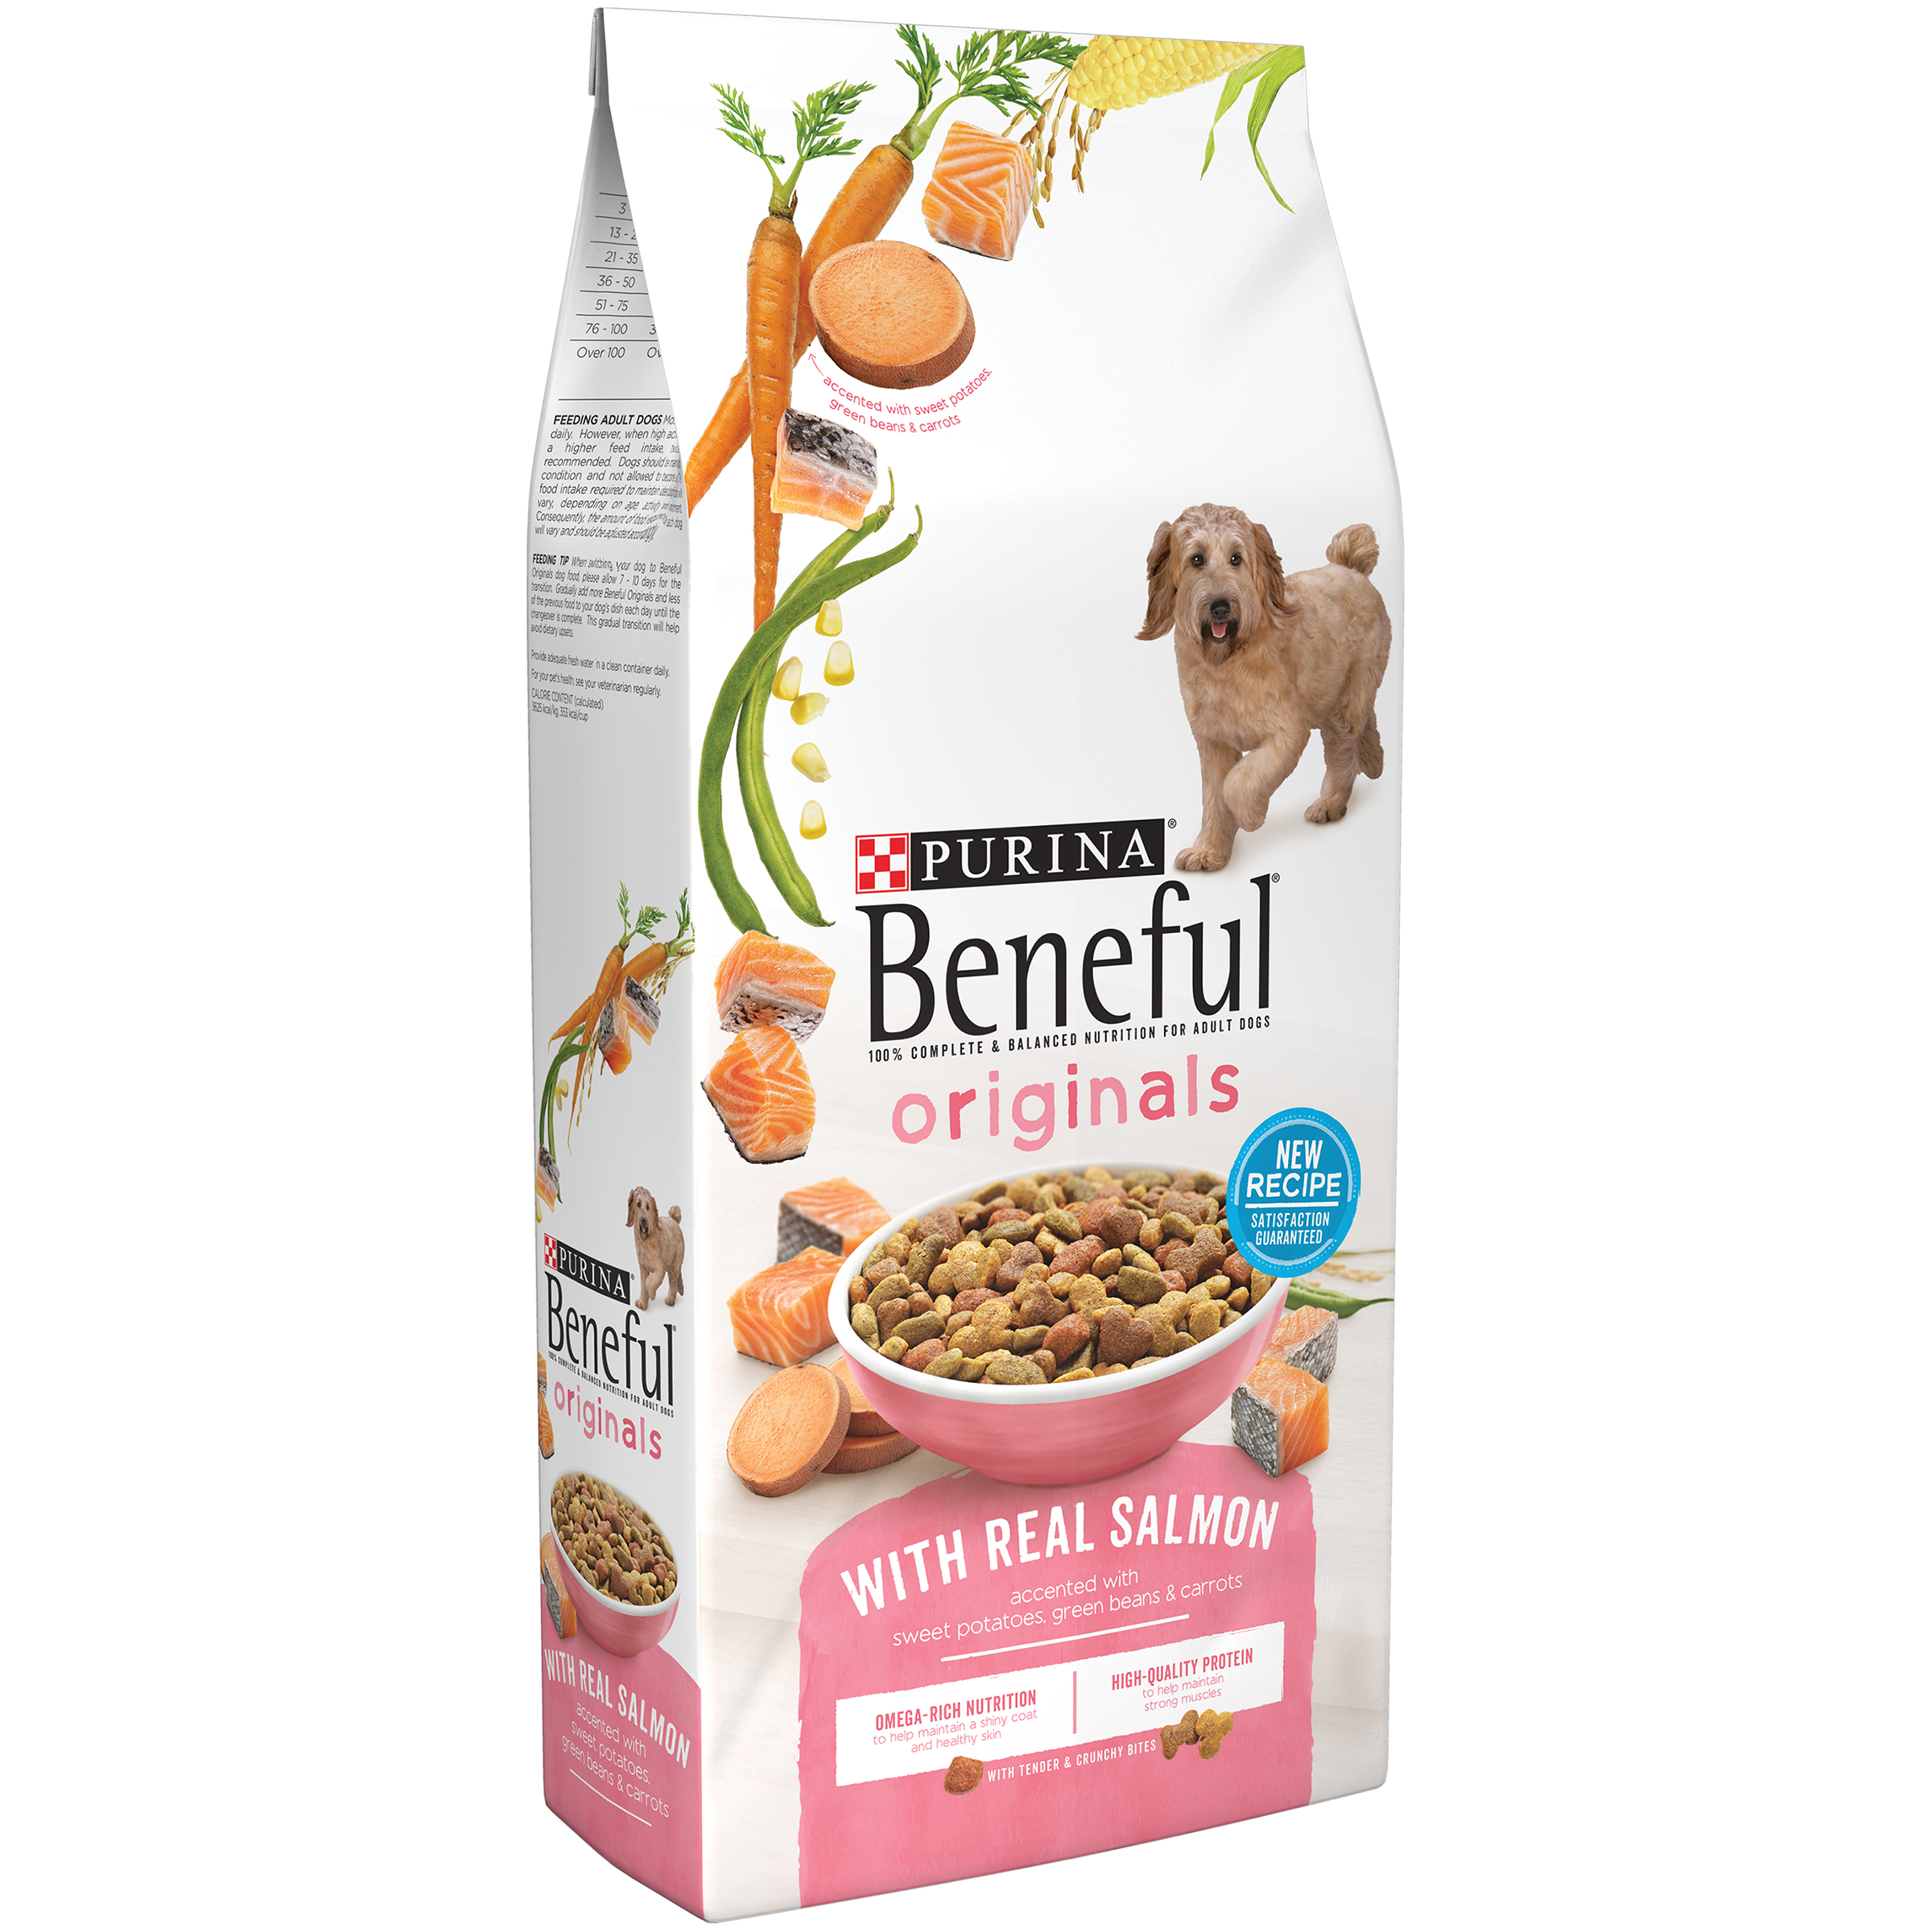 Purina Beneful Originals With Real Salmon Dog Food 31.1 lb. Bag